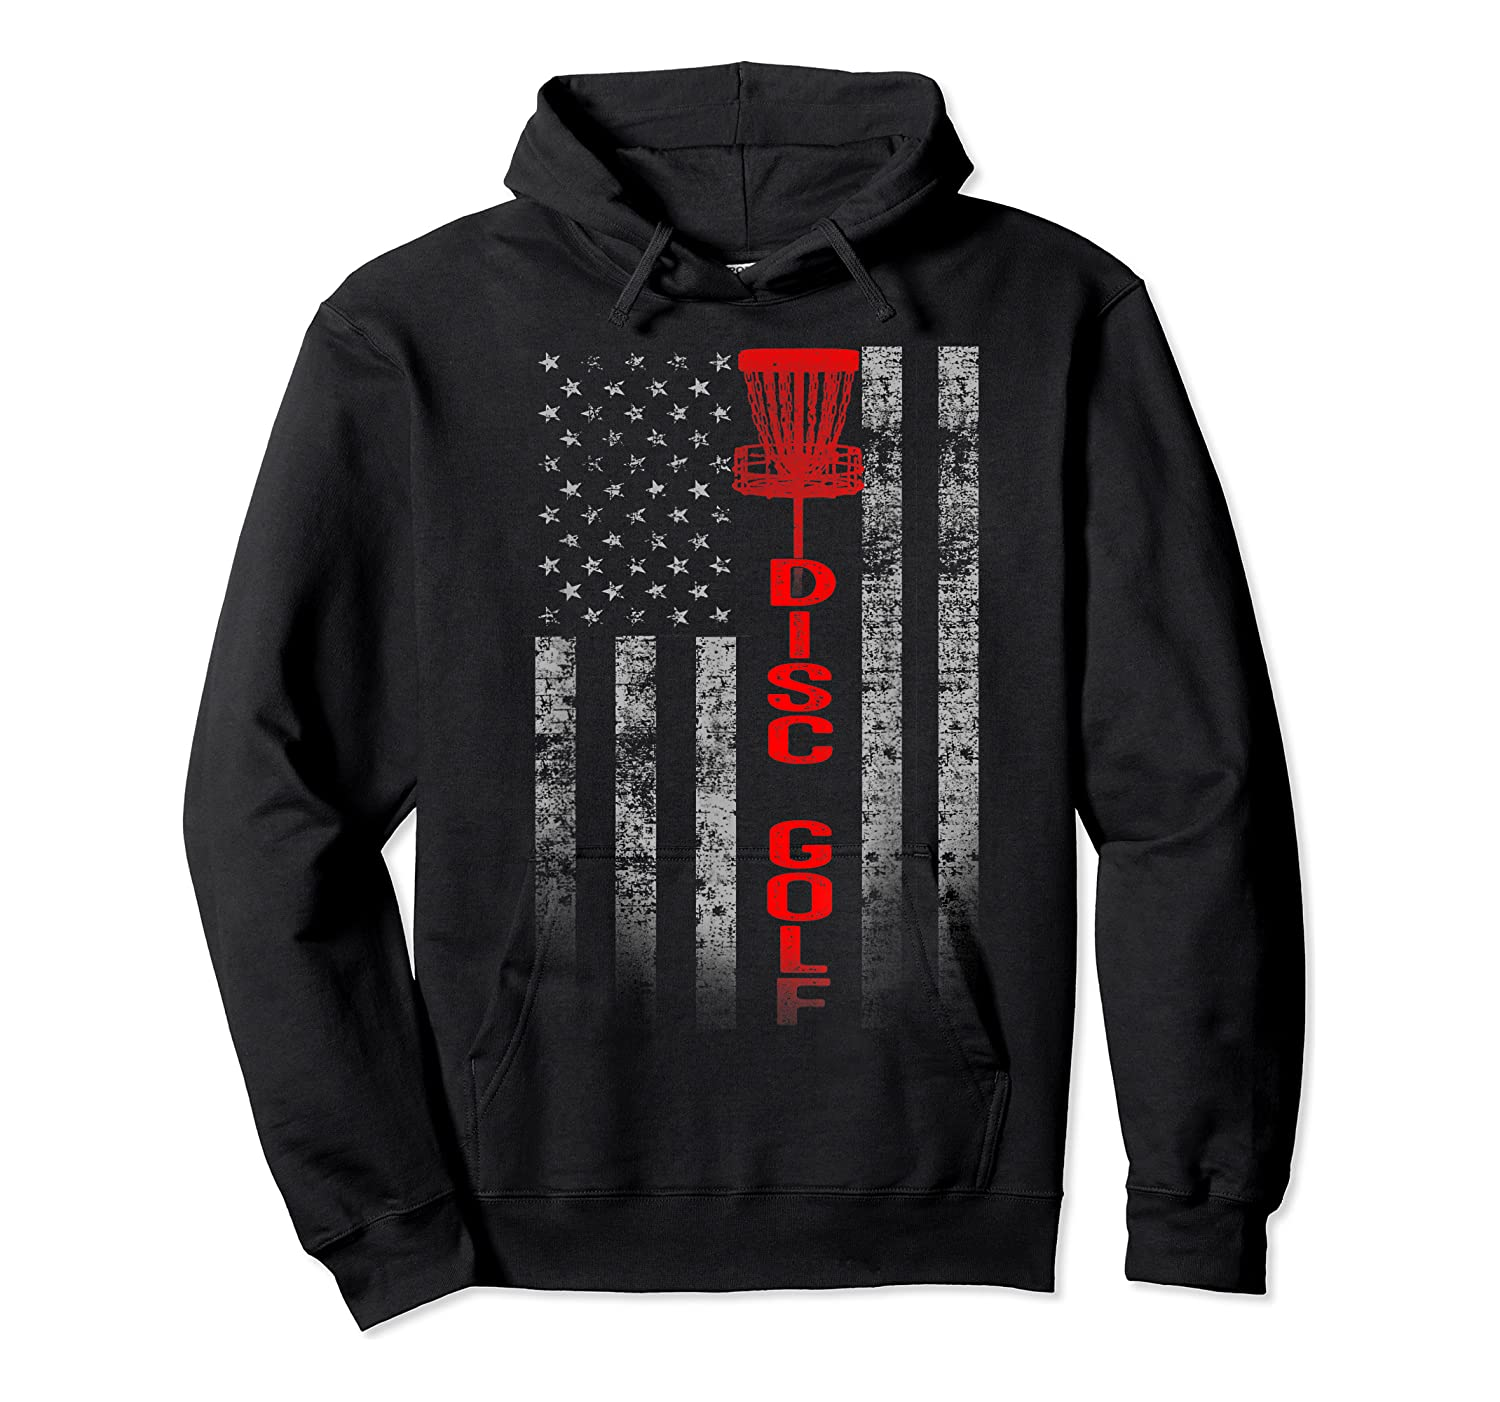 Disc Golf Basket Flag Design Gift For Disc Golfers Shirts Unisex Pullover Hoodie